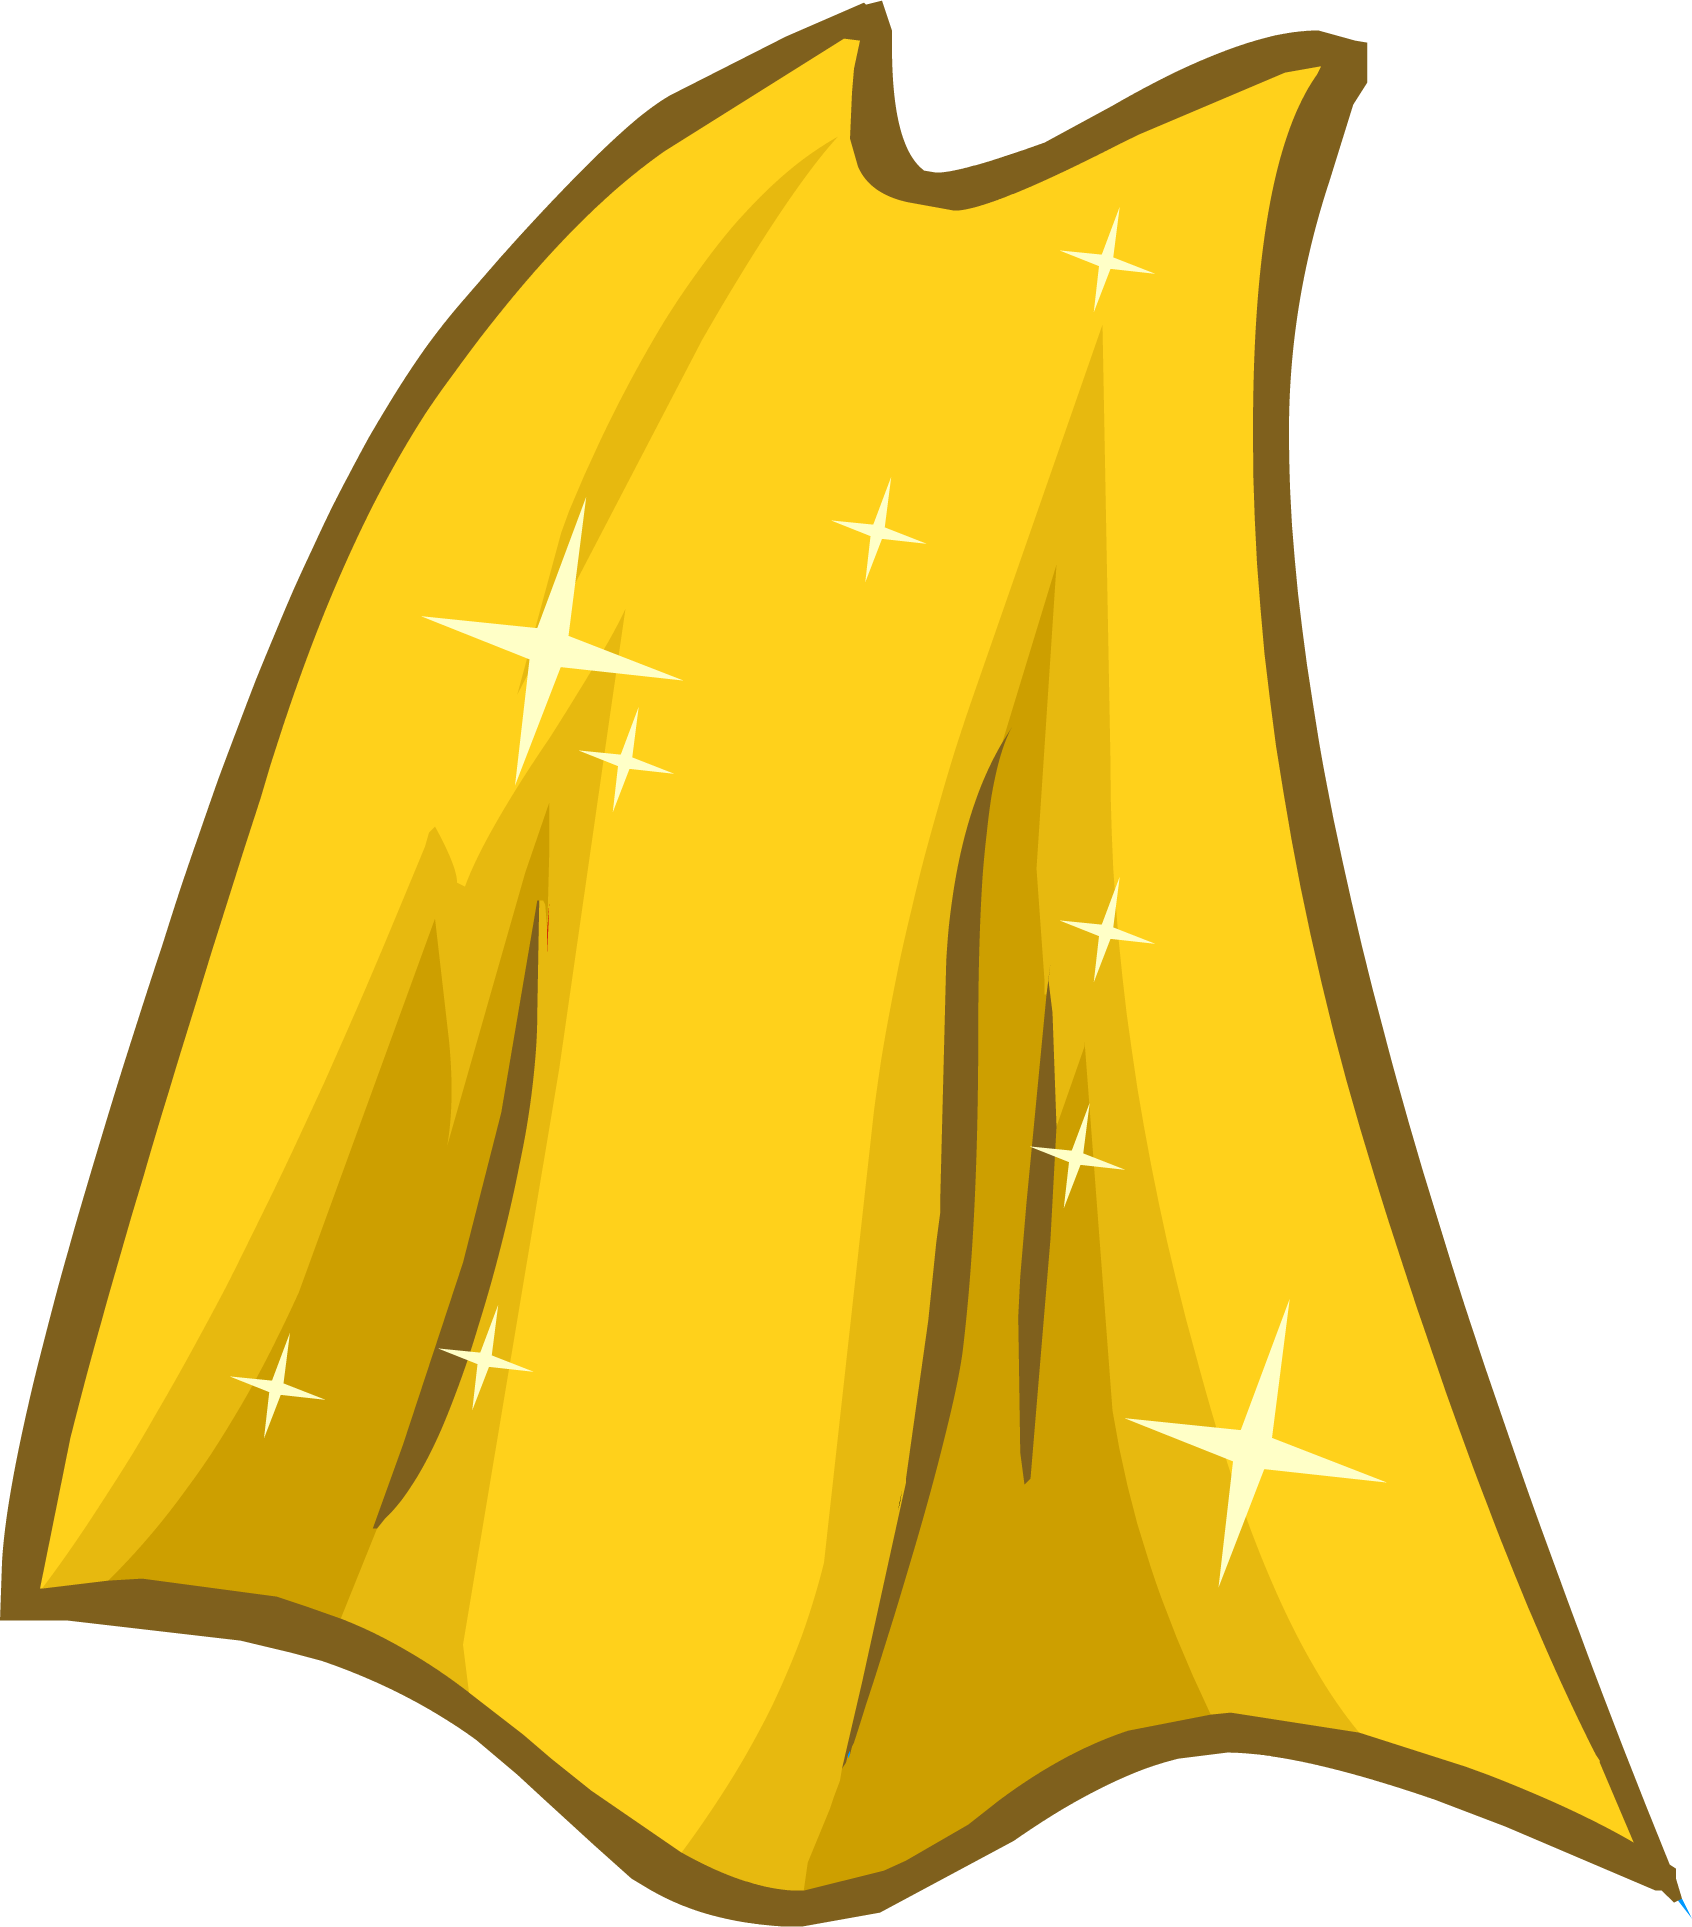 Gold Cape | Club Penguin Wiki | FANDOM powered by Wikia